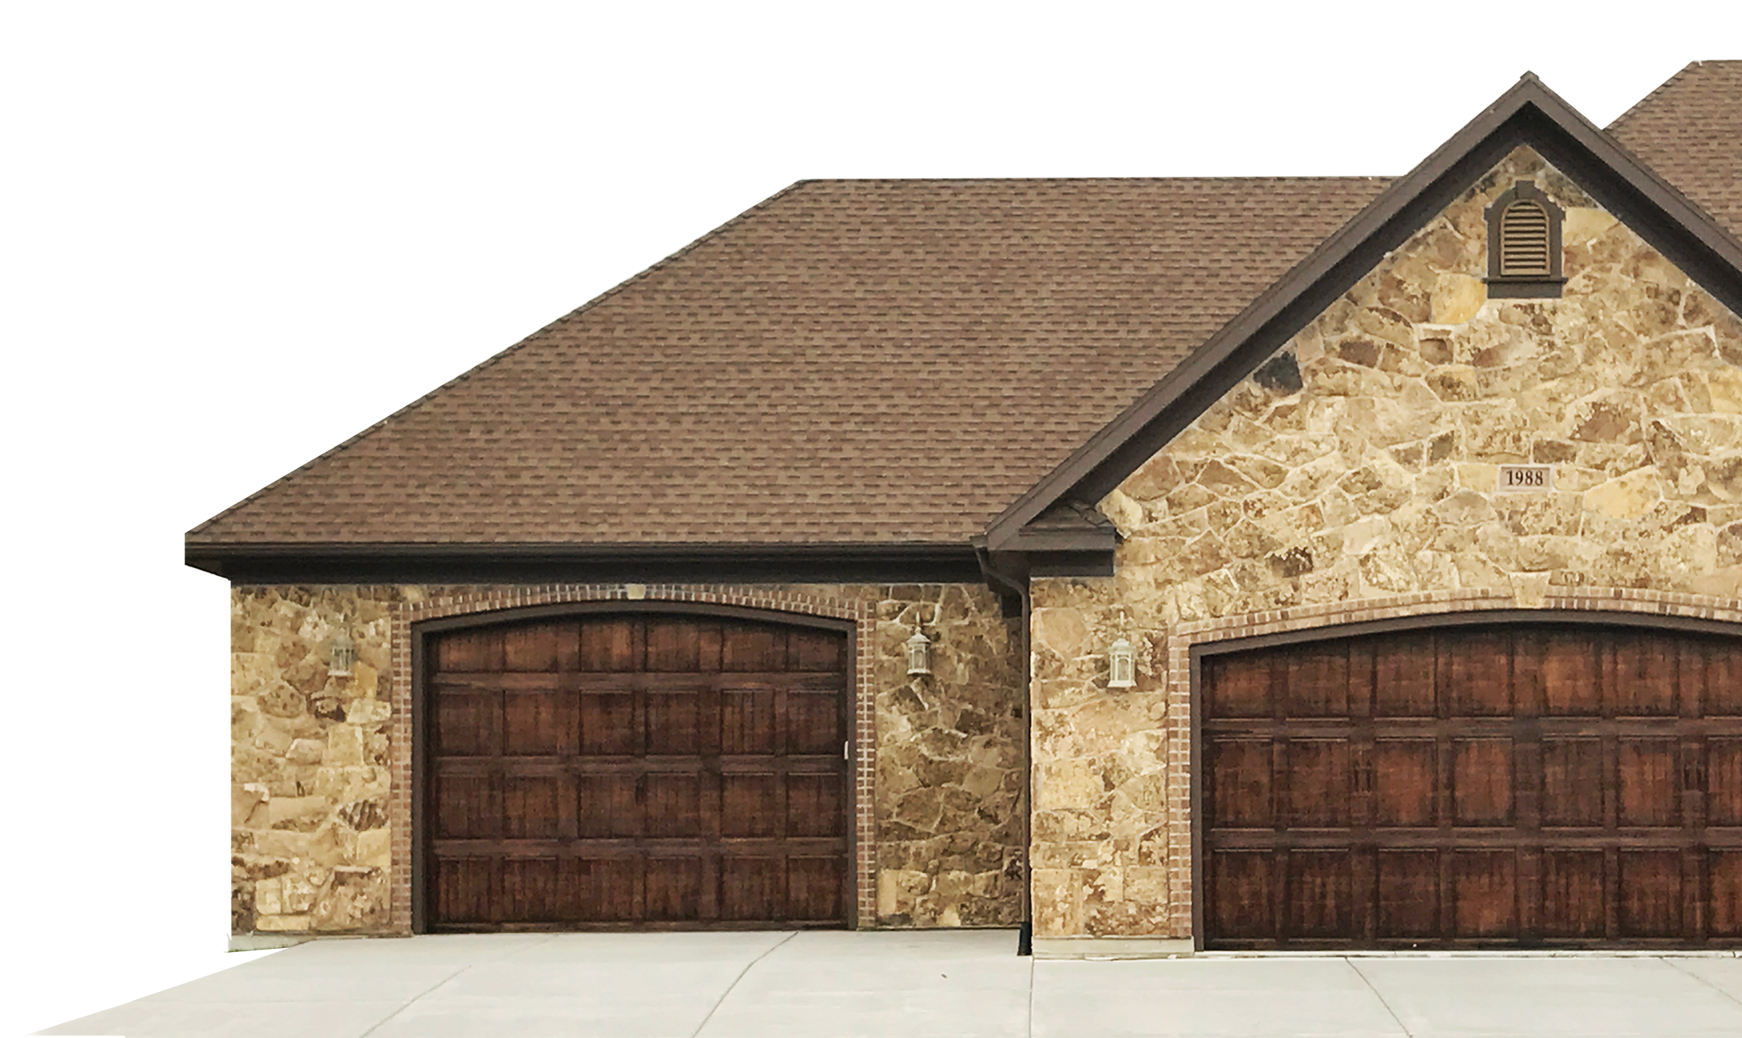 house with two garages.